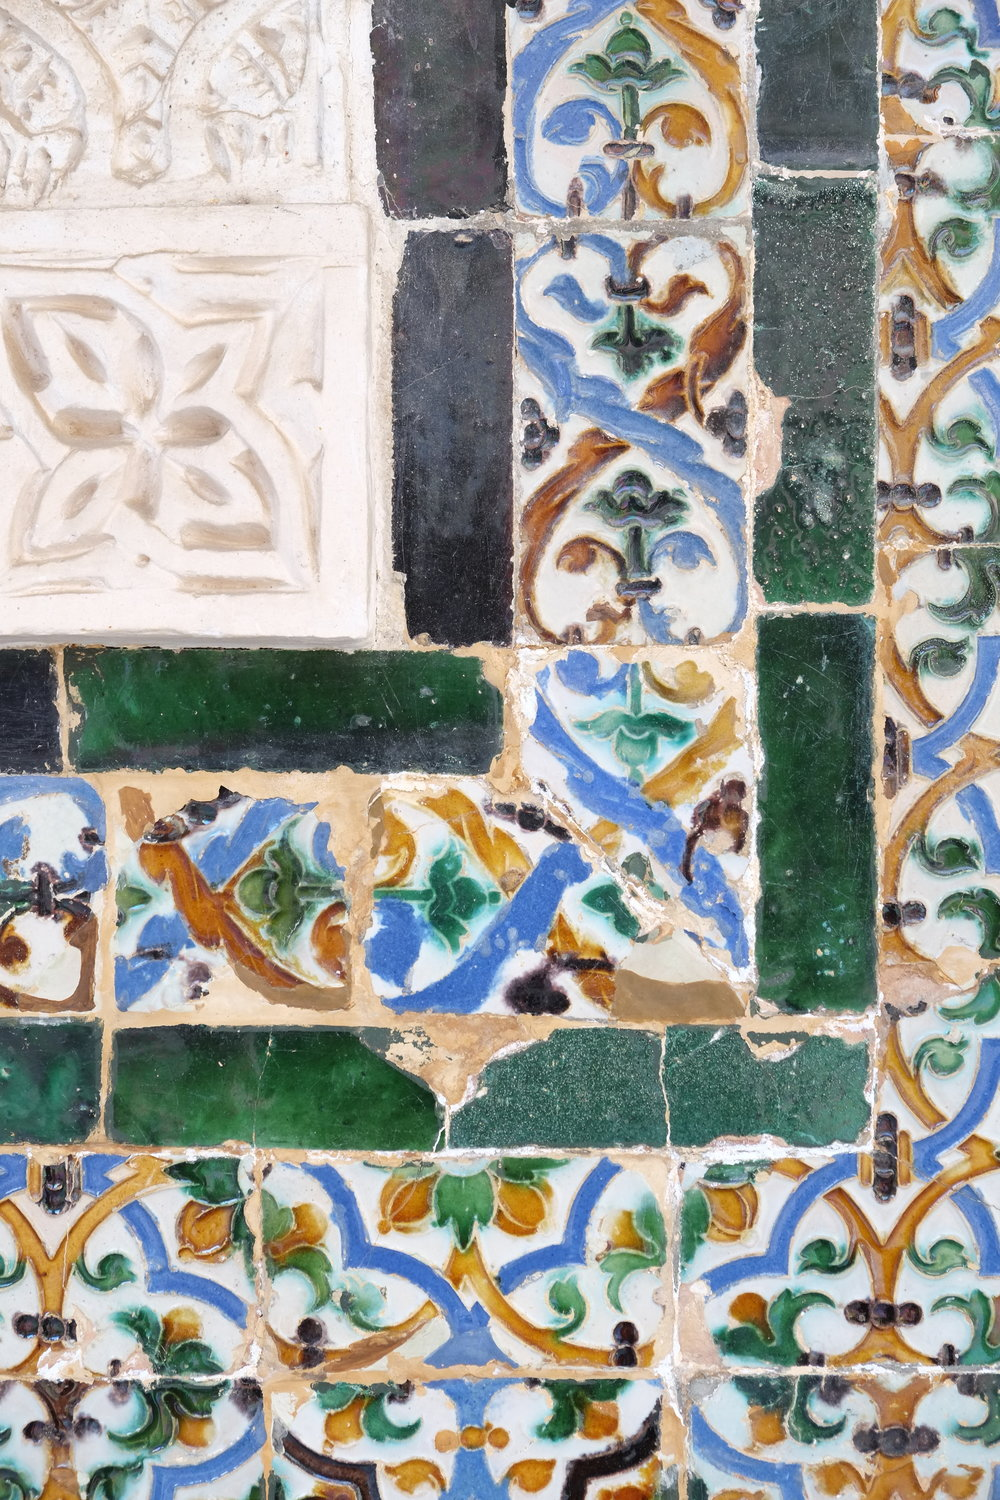 Tile details at Casa de Pilatos